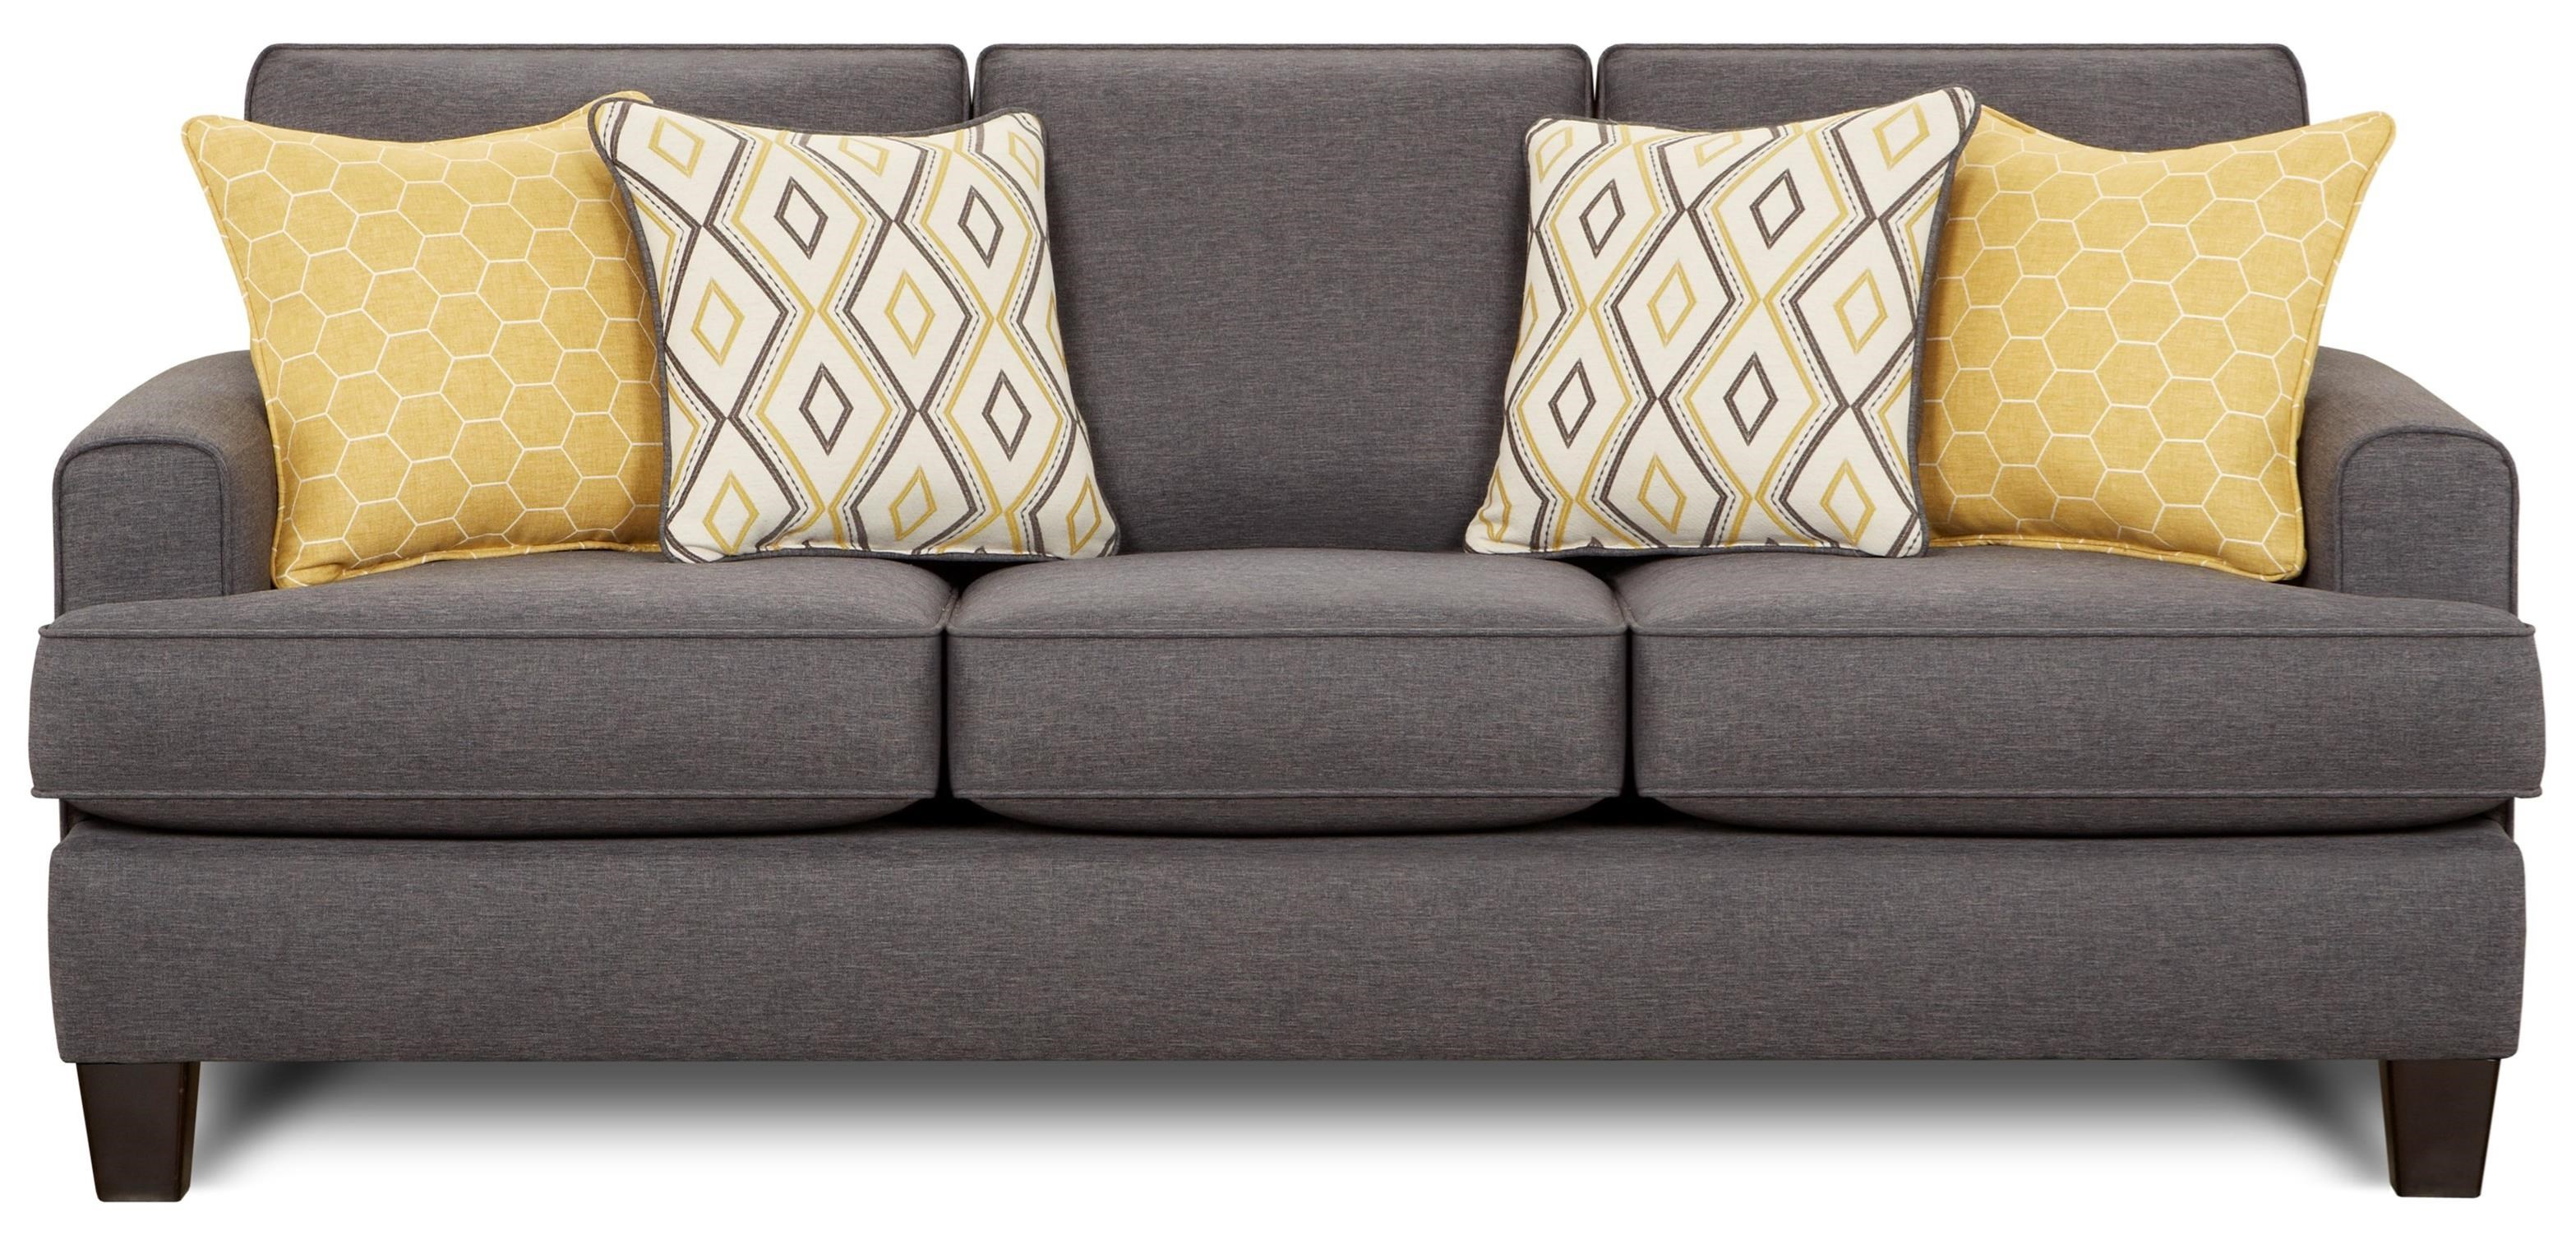 2600 Sofa by Fusion Furniture at VanDrie Home Furnishings